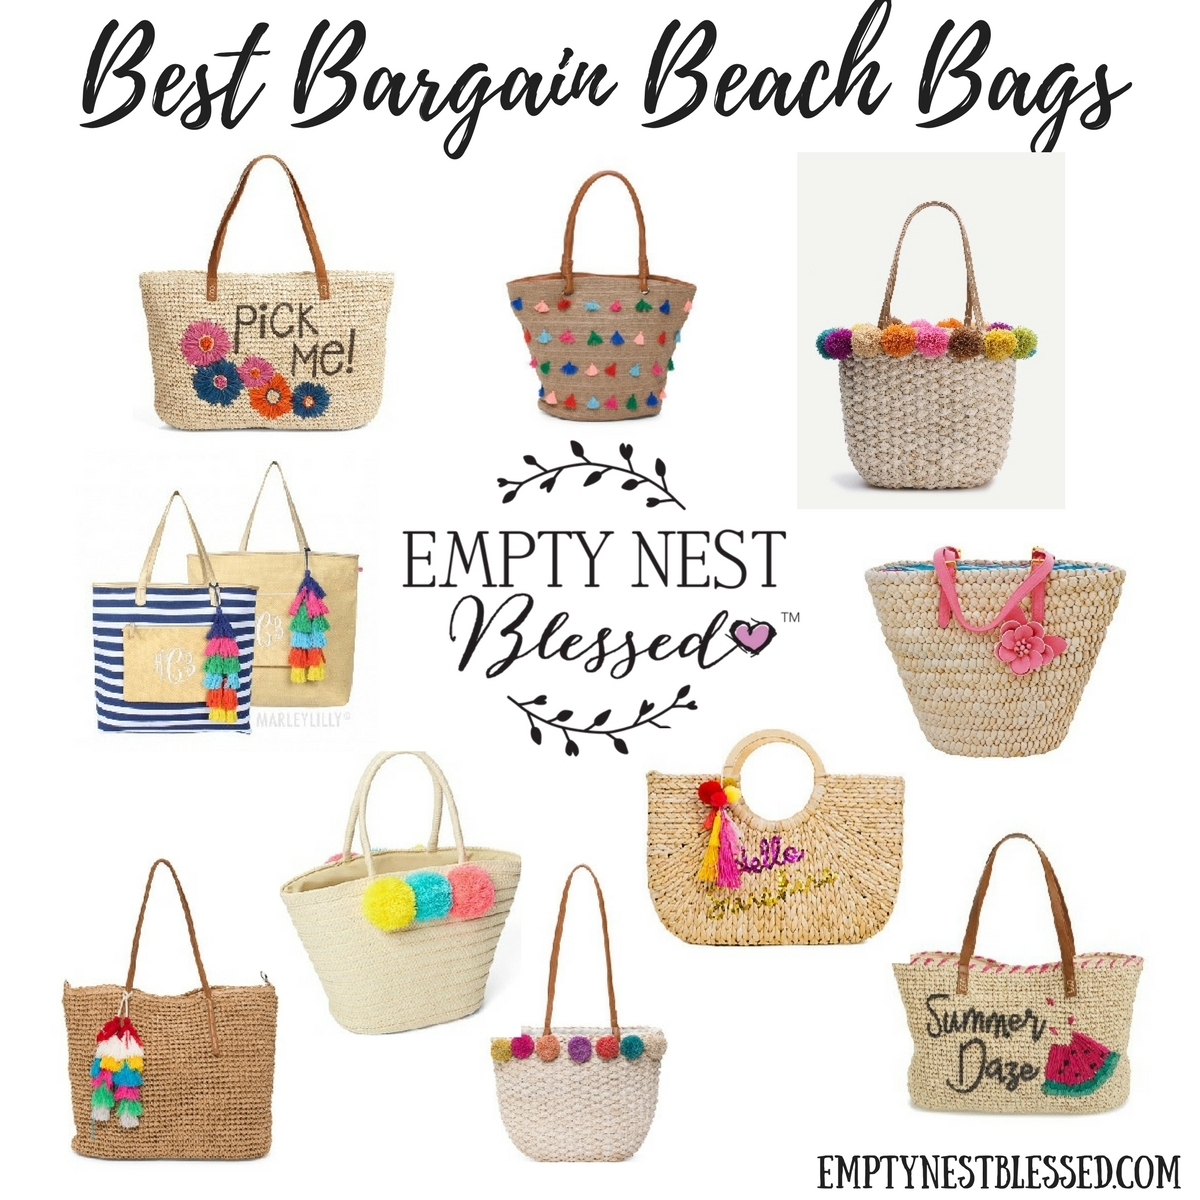 straw totes with poms, straw totes with tassels, bargain beach bags, cheap beach bags, cheap straw totes, bargain straw totes, summer handbags, straw totes